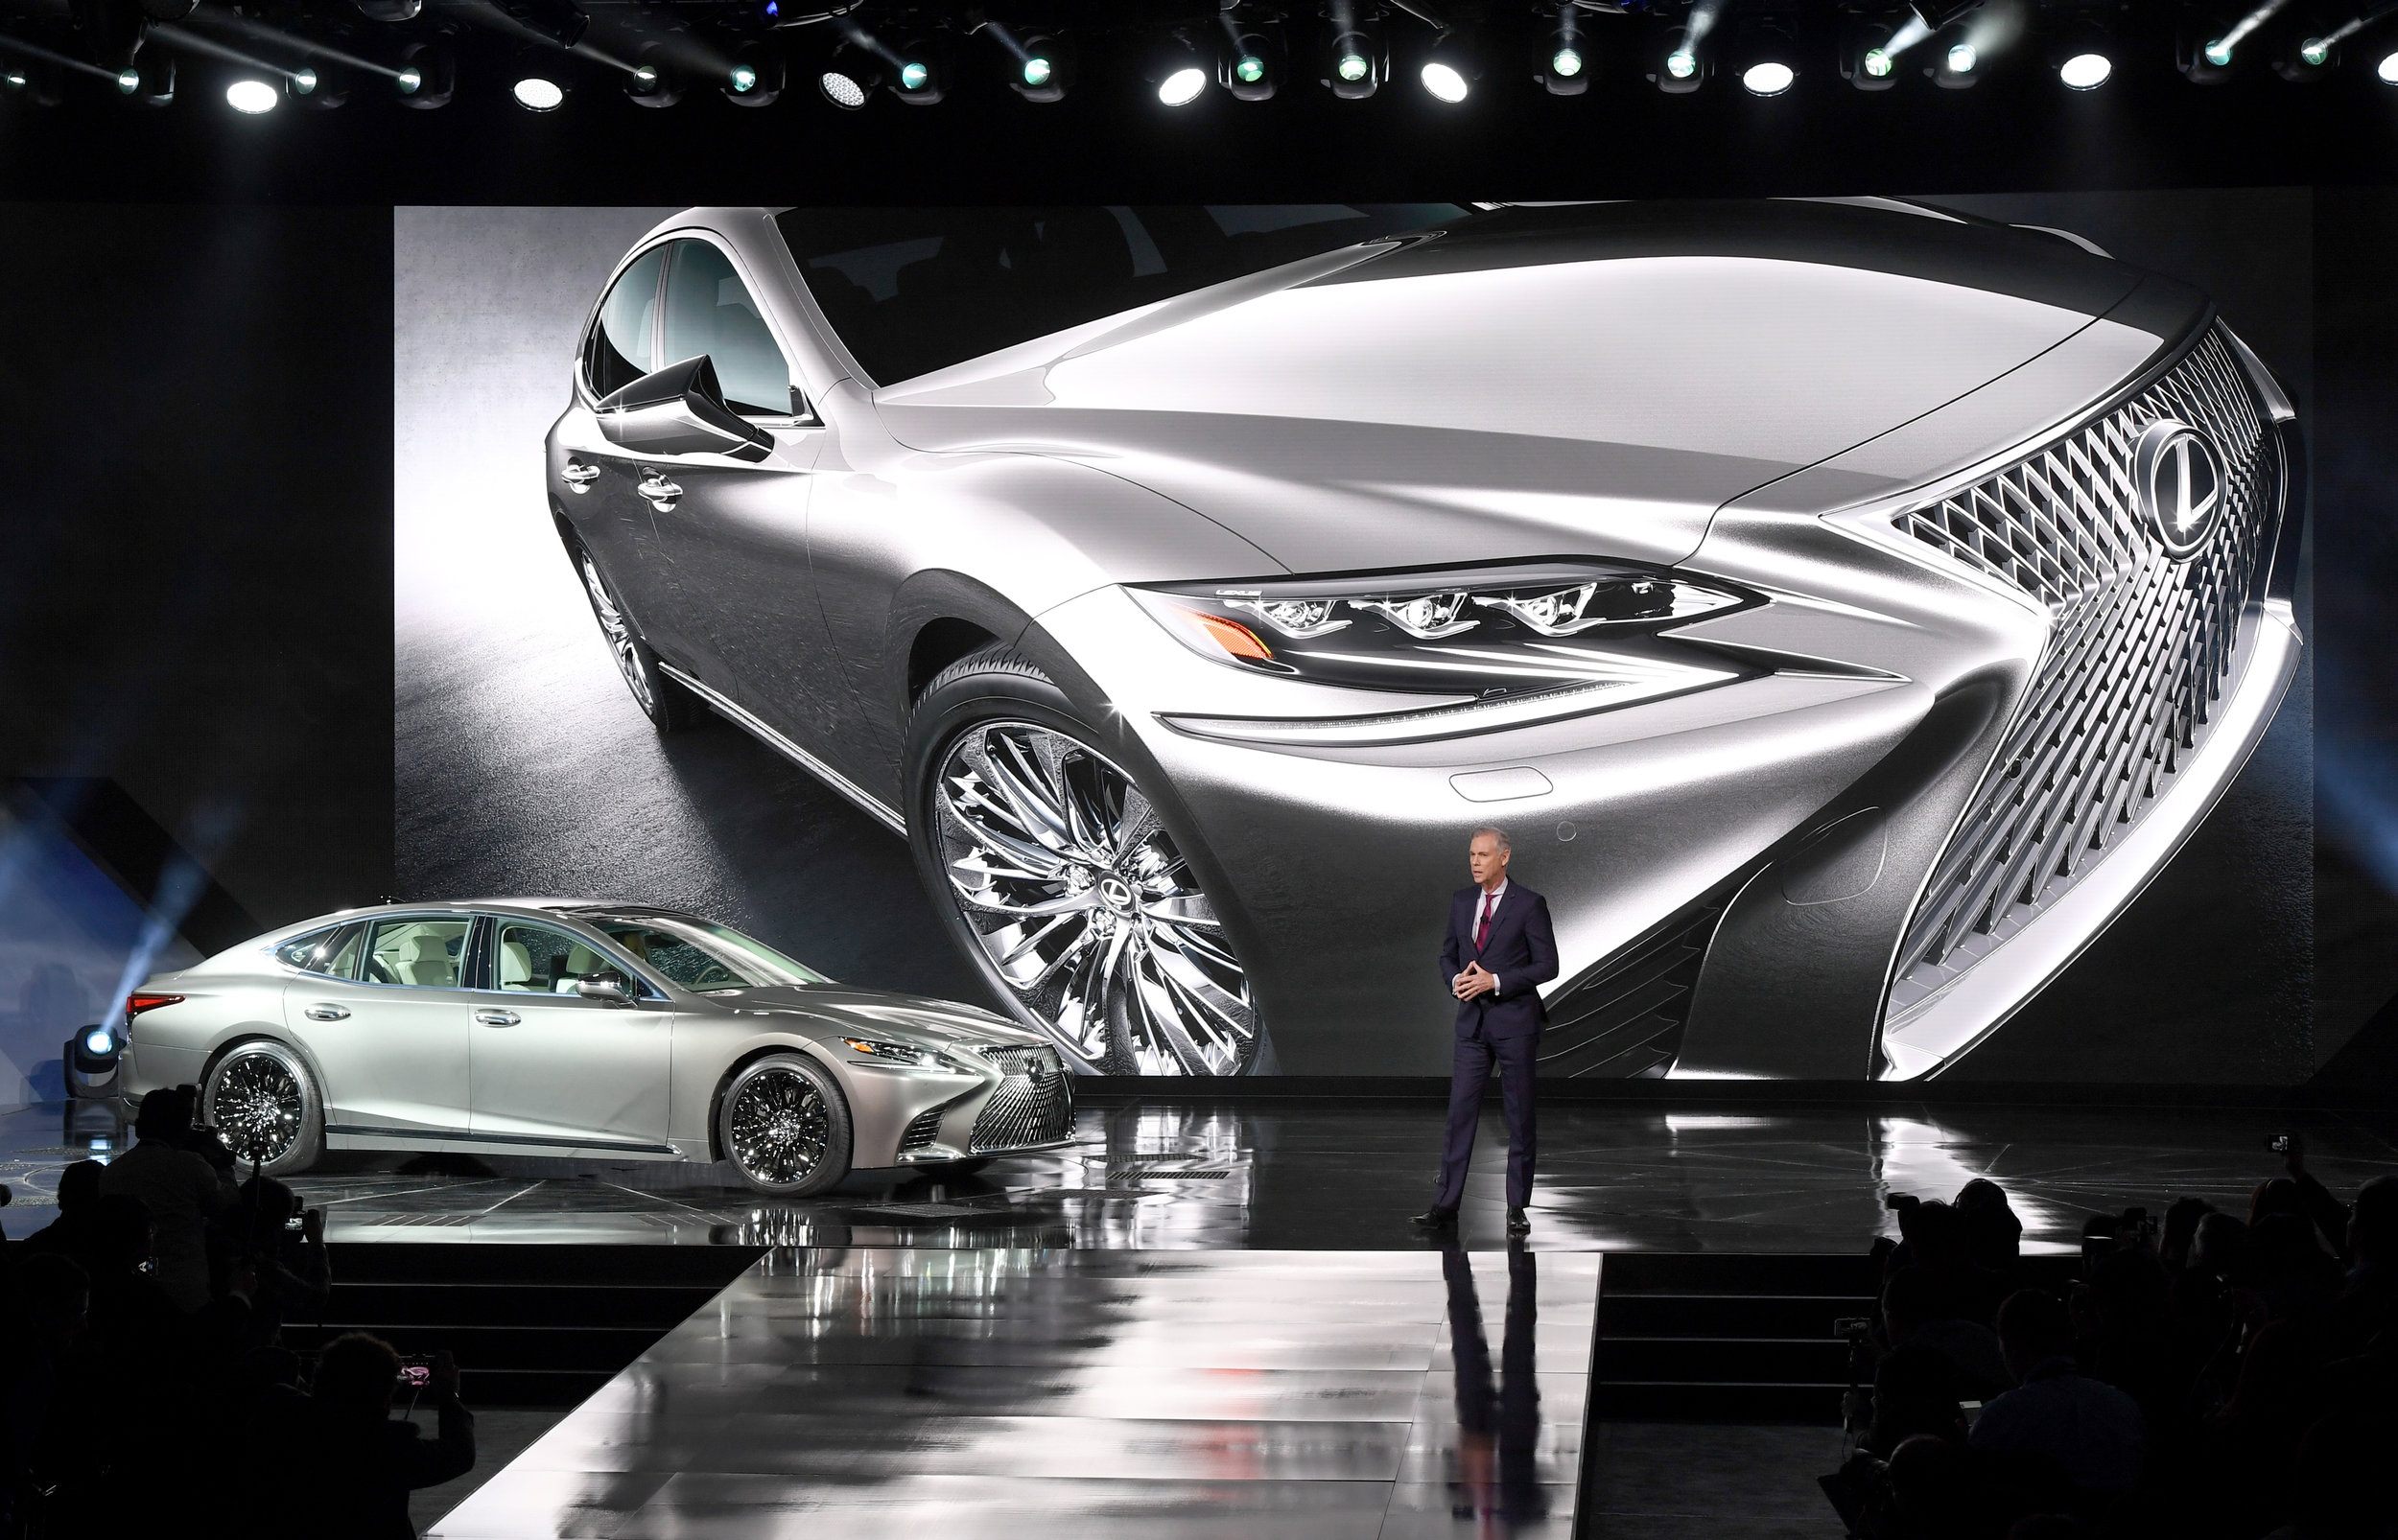 Detroit International Auto Show  Lexus 500 reveal stage and press riser